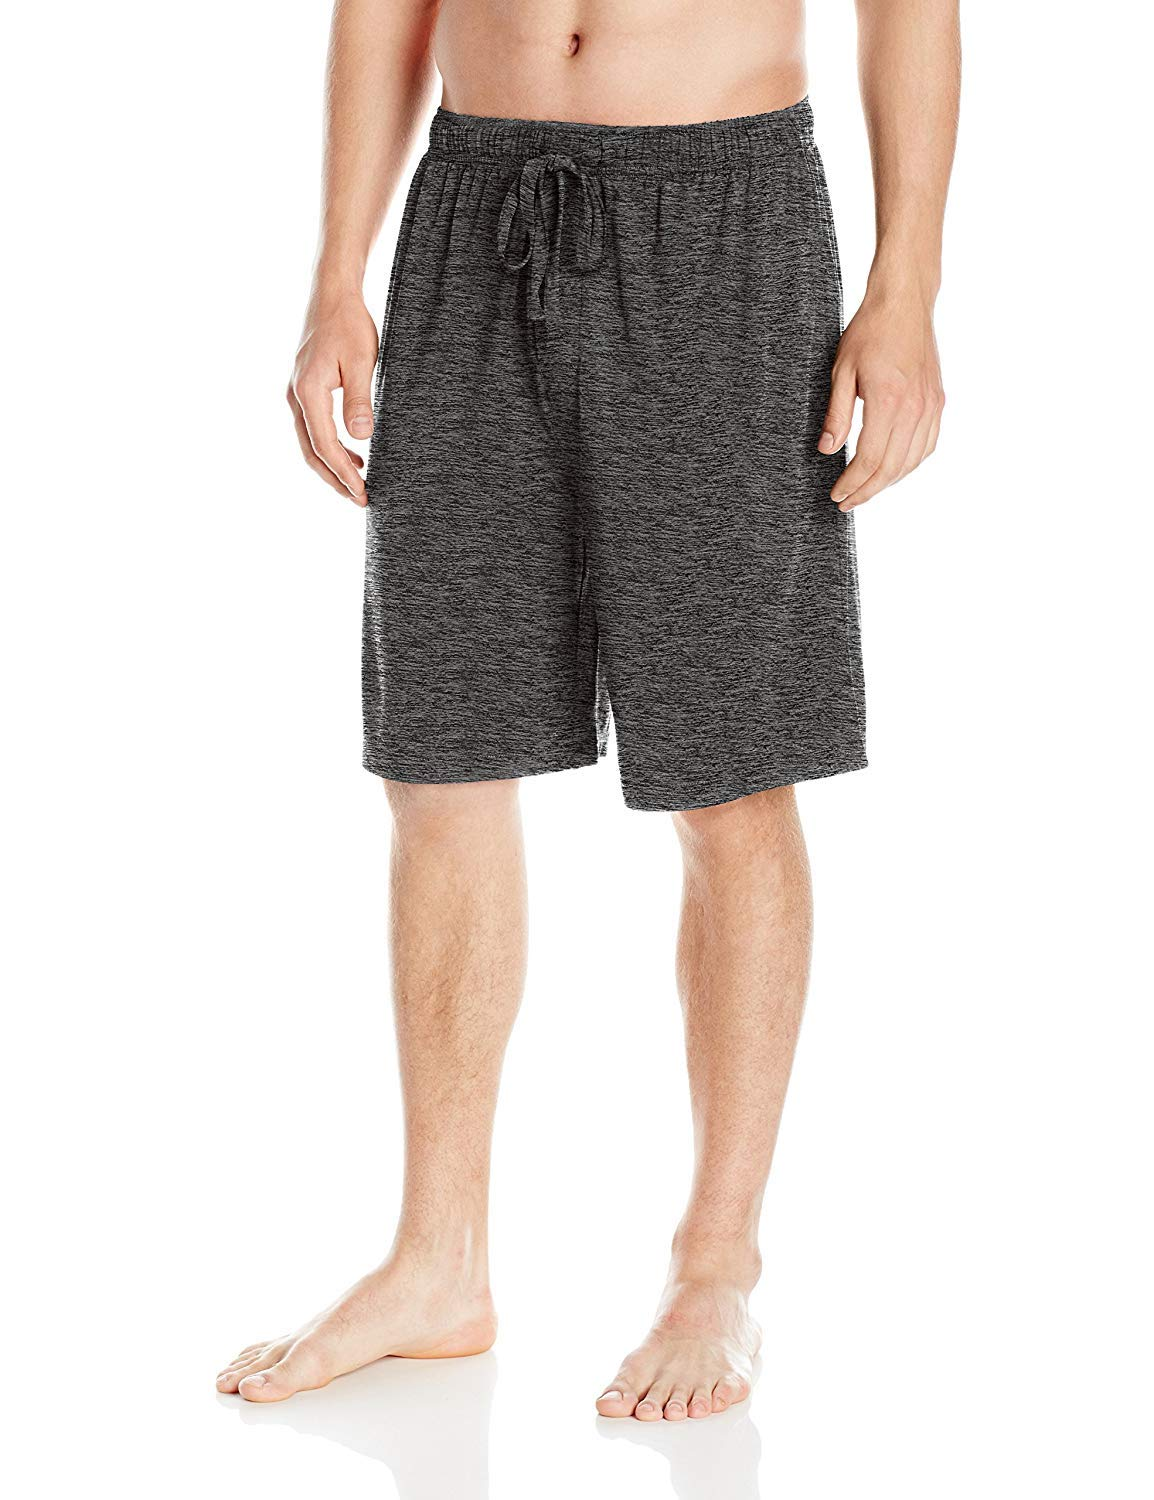 SGNOIEY Men's Sleep Shorts,100% Cotton Knit Sleep Shorts & Lounge Wear-Grey L